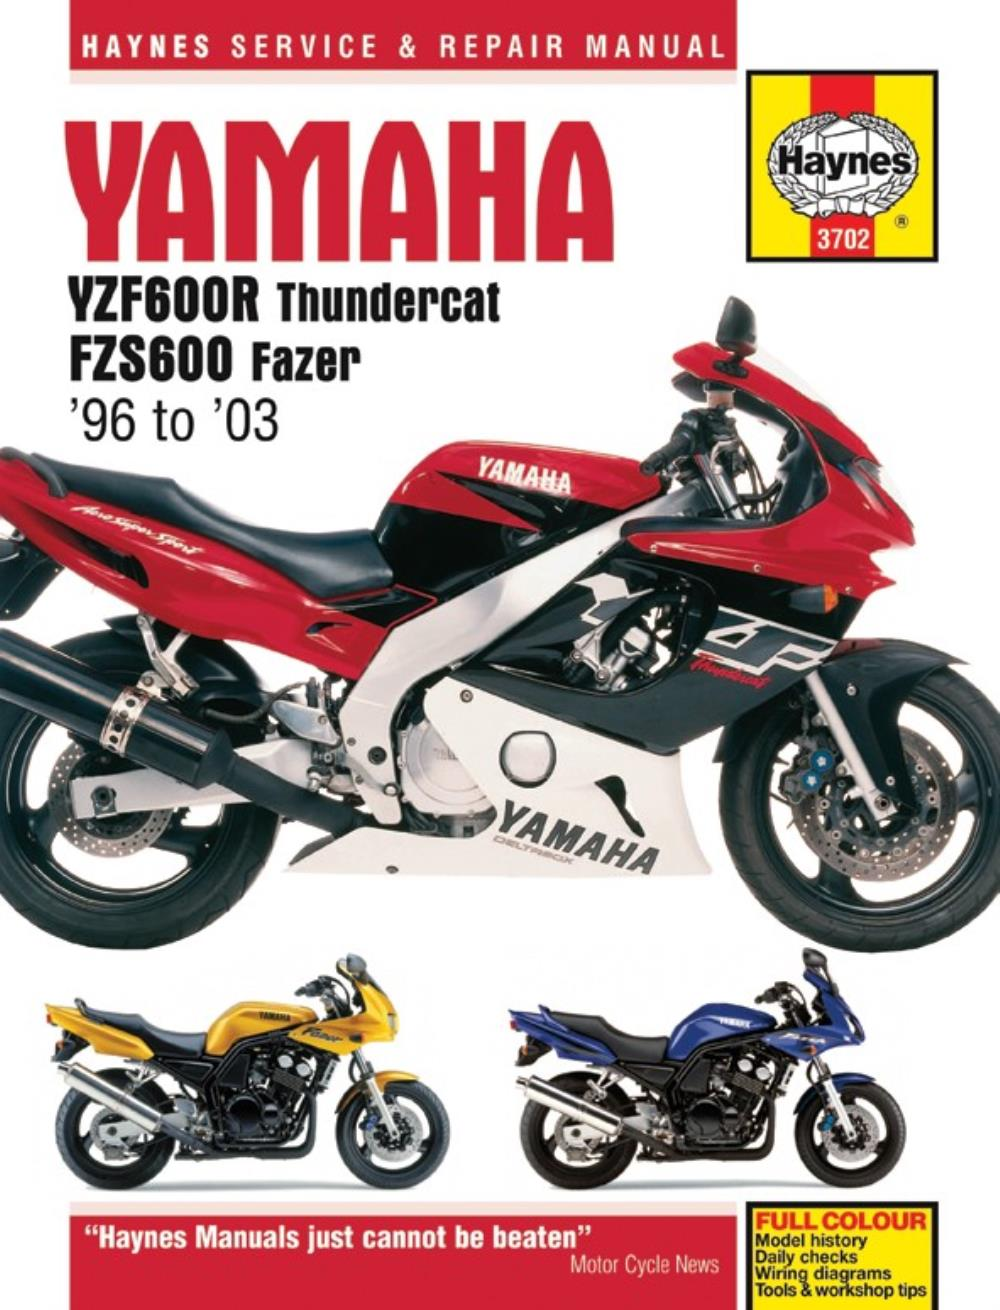 Yzf 600 Wiring Diagram Will Be A Thing Fzr 2002 Another Blog About U2022 Rh Ok2 Infoservice Ru 1996 Yzf600r Street Fighter